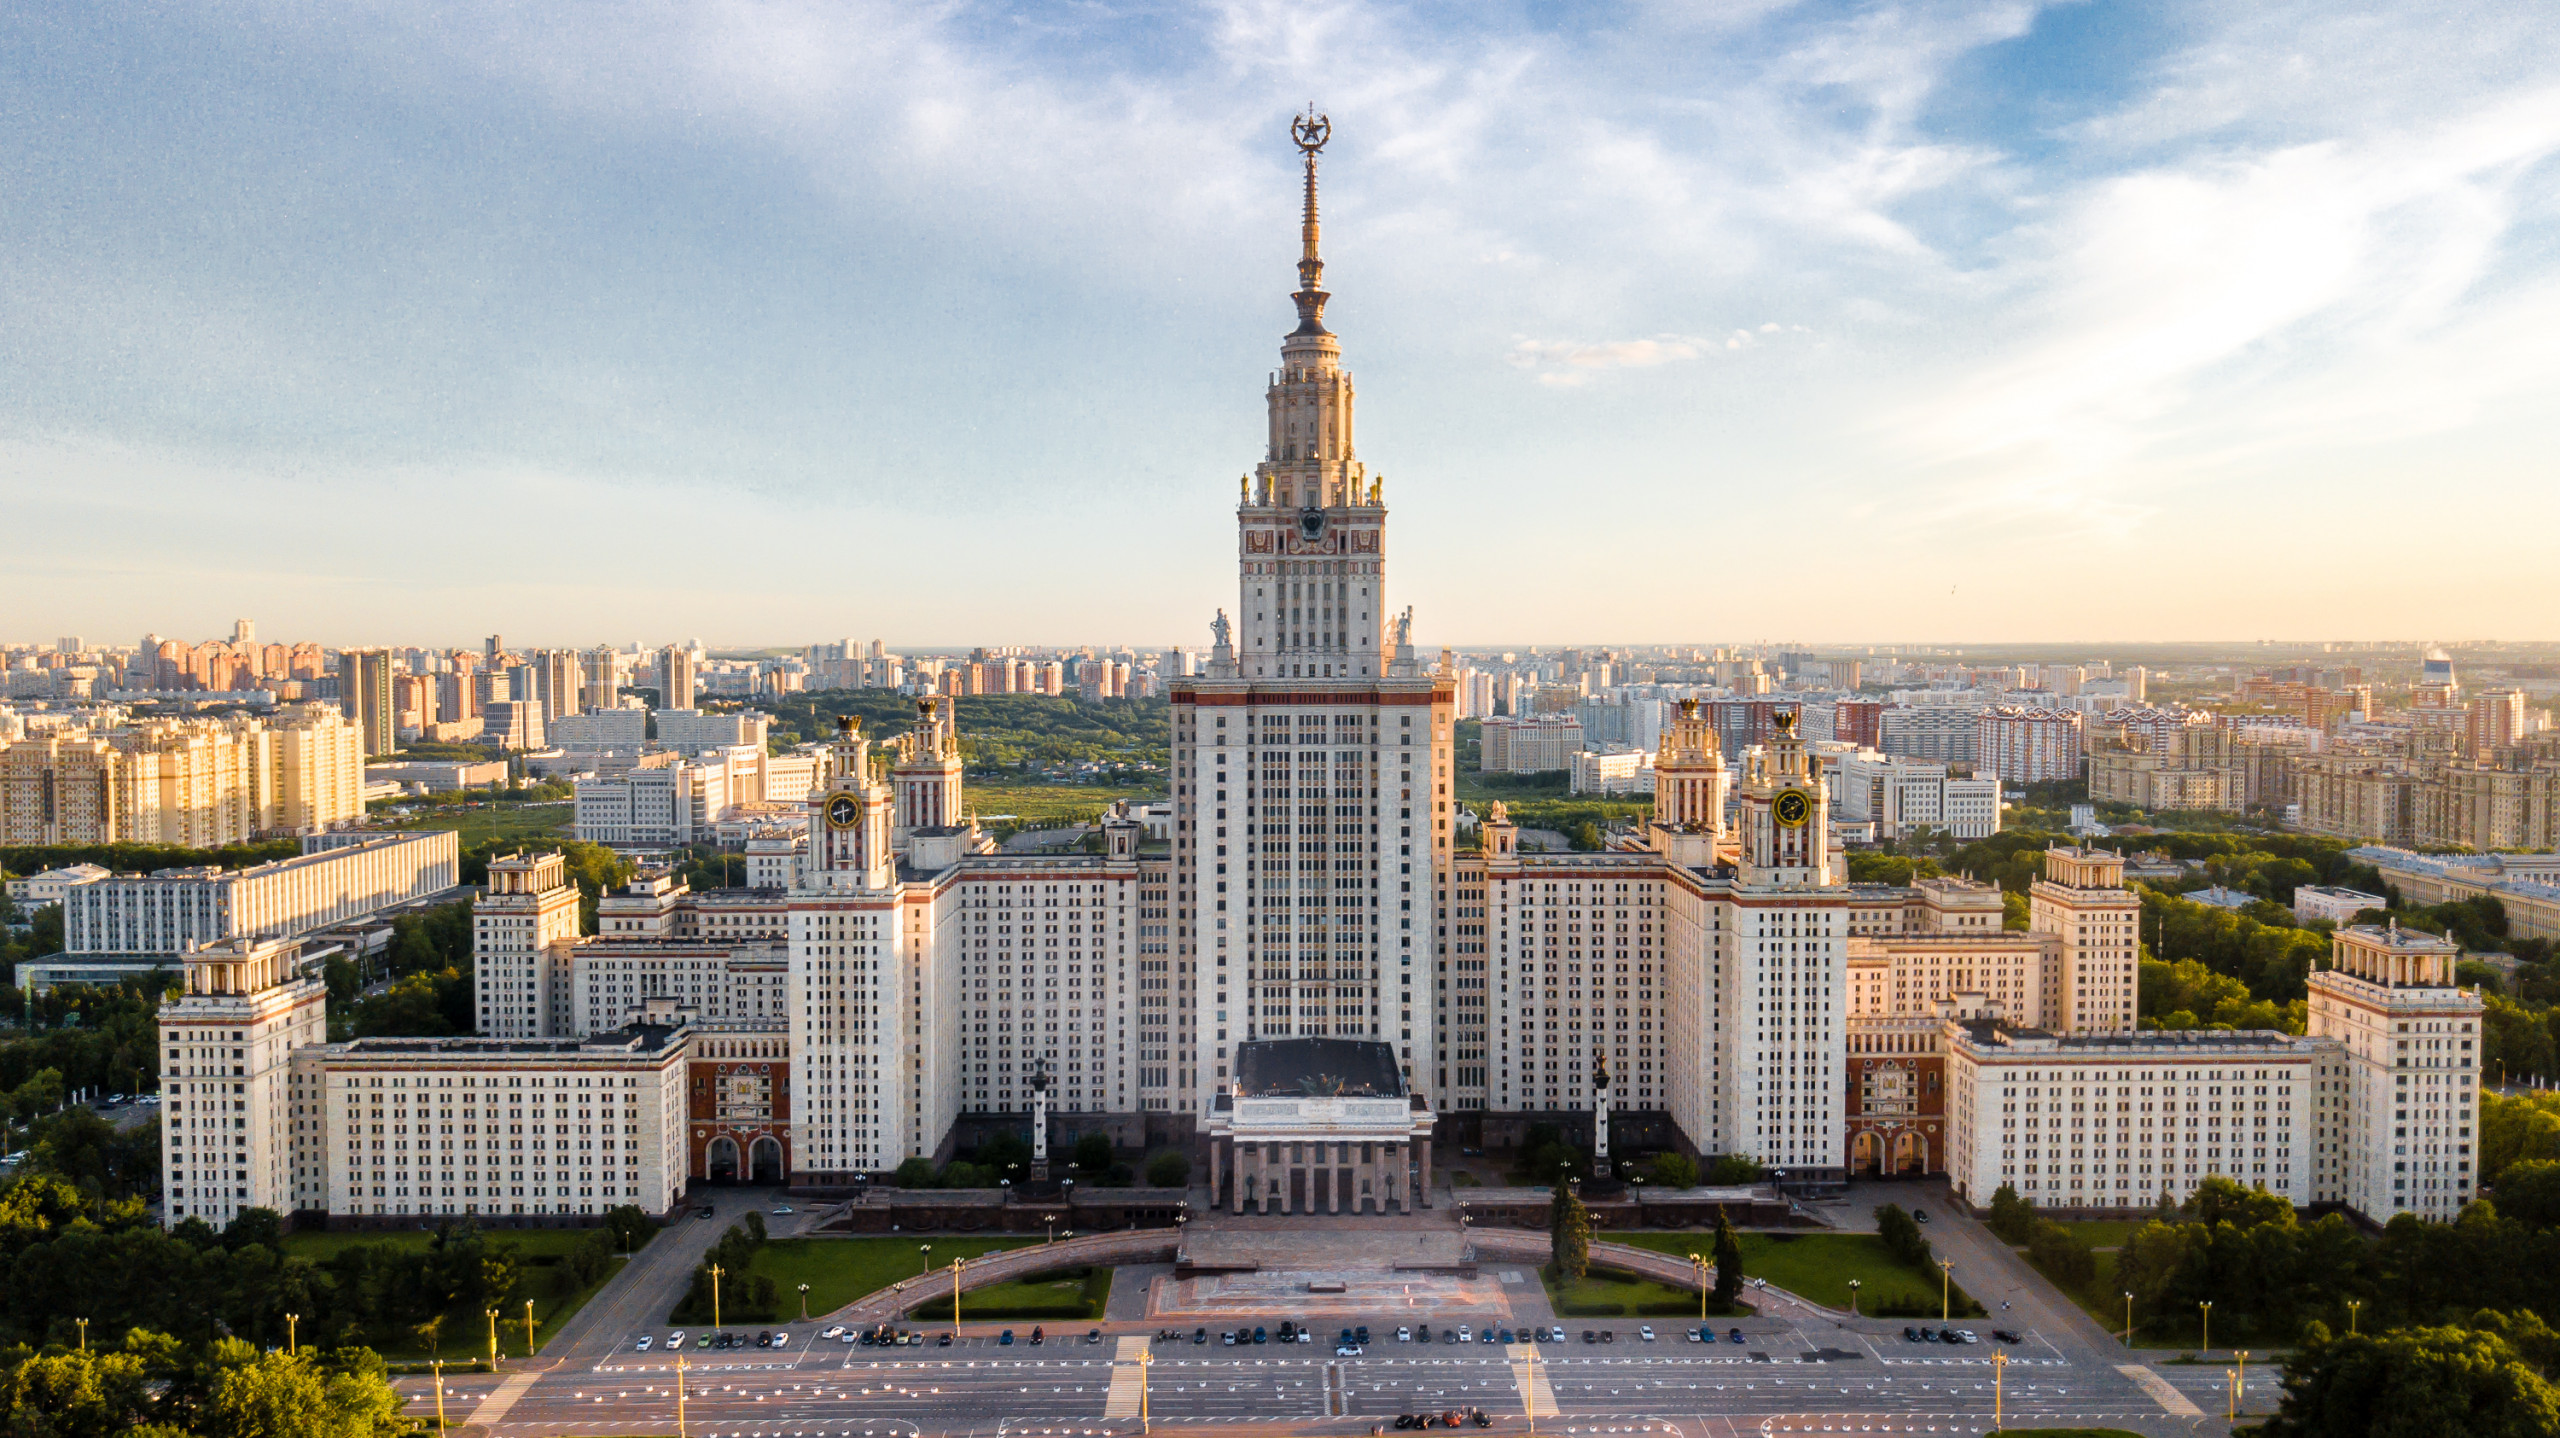 81 illegal Forex dealers in Russia, central bank reveals